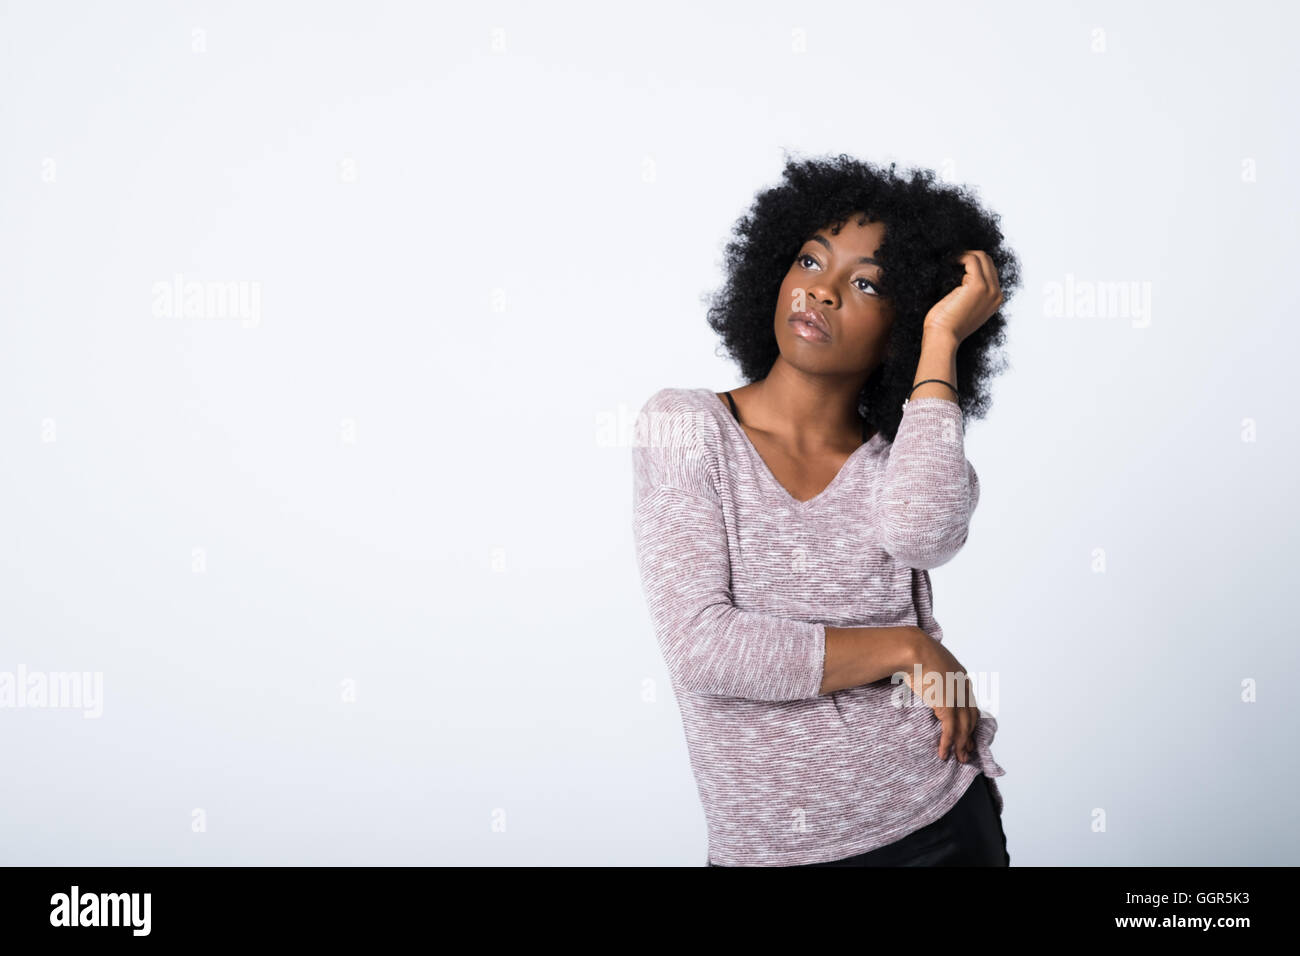 Fashion portrait of an Afro caribbean woman - Stock Image